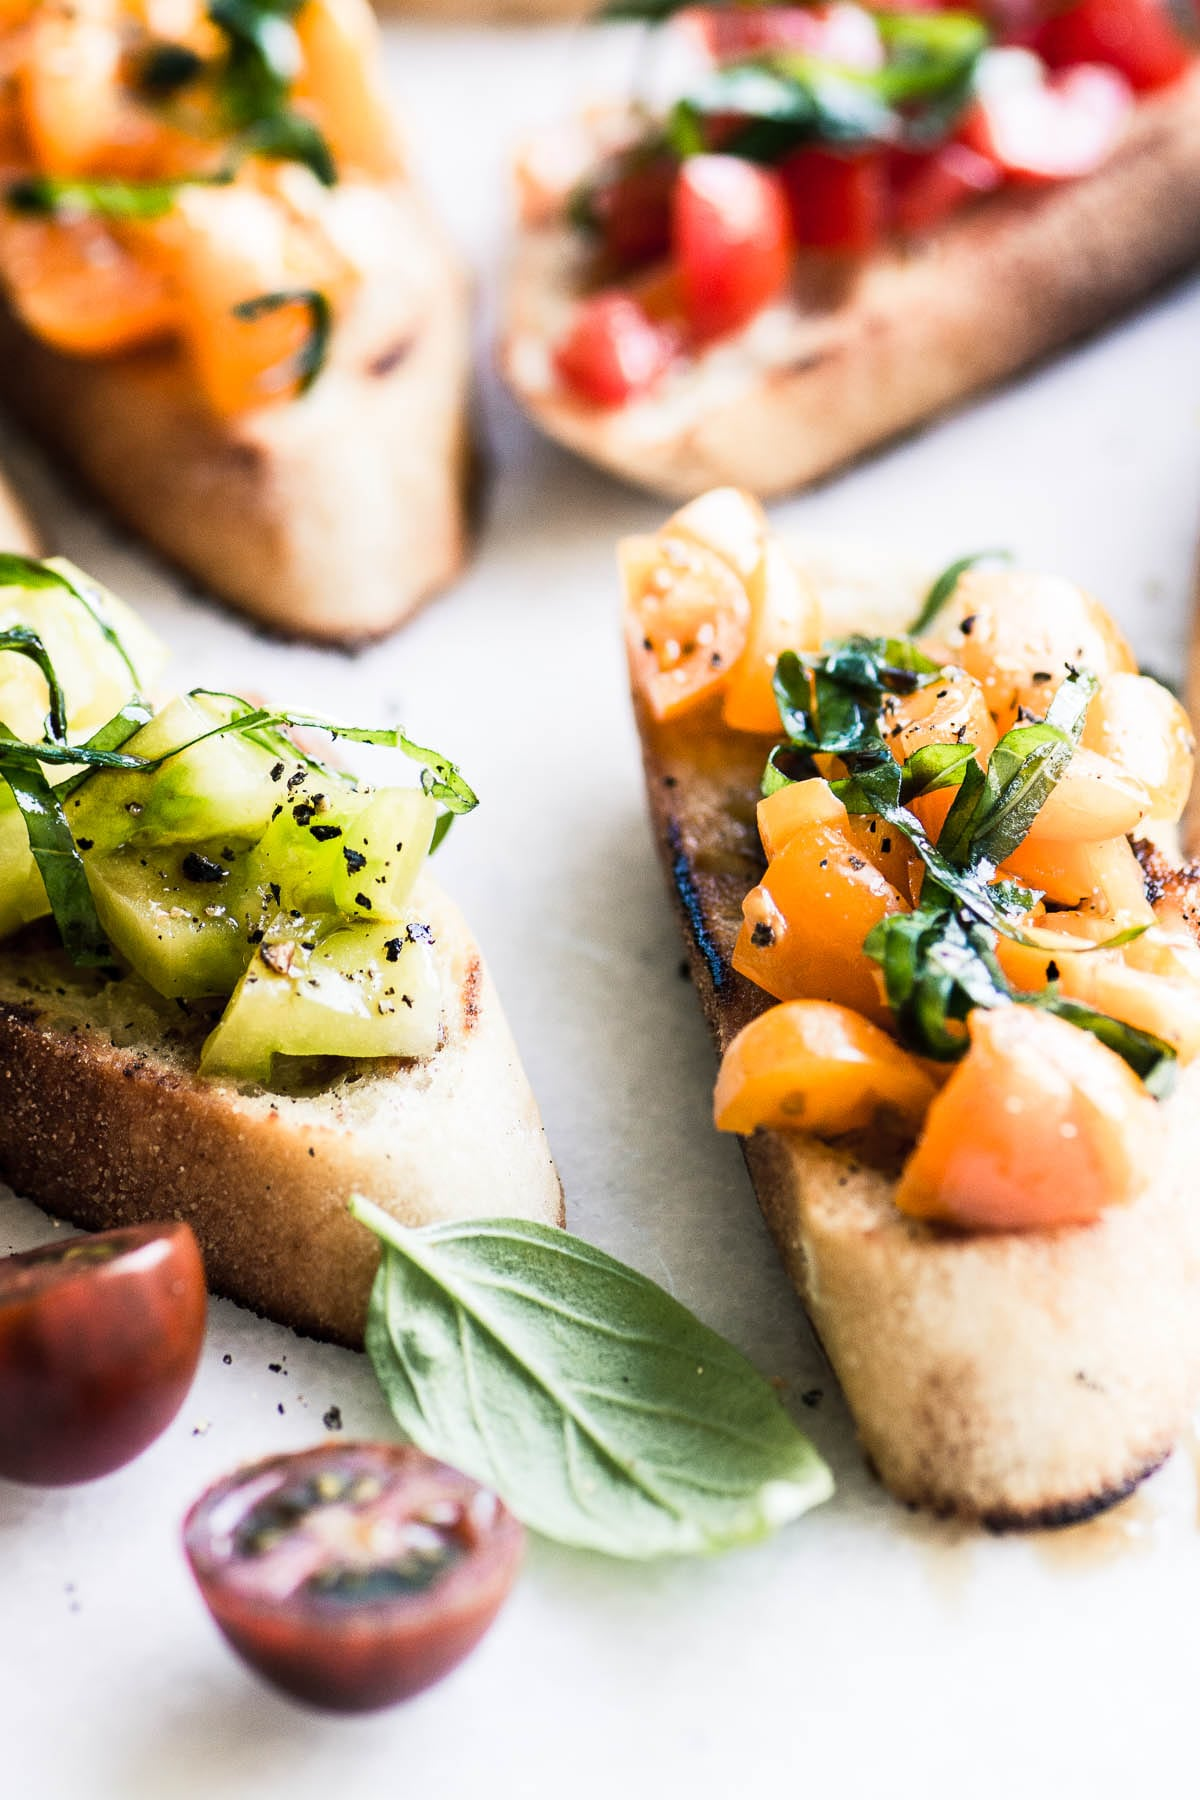 Heirloom Tomato Bruschetta with colorful tomatoes and basil